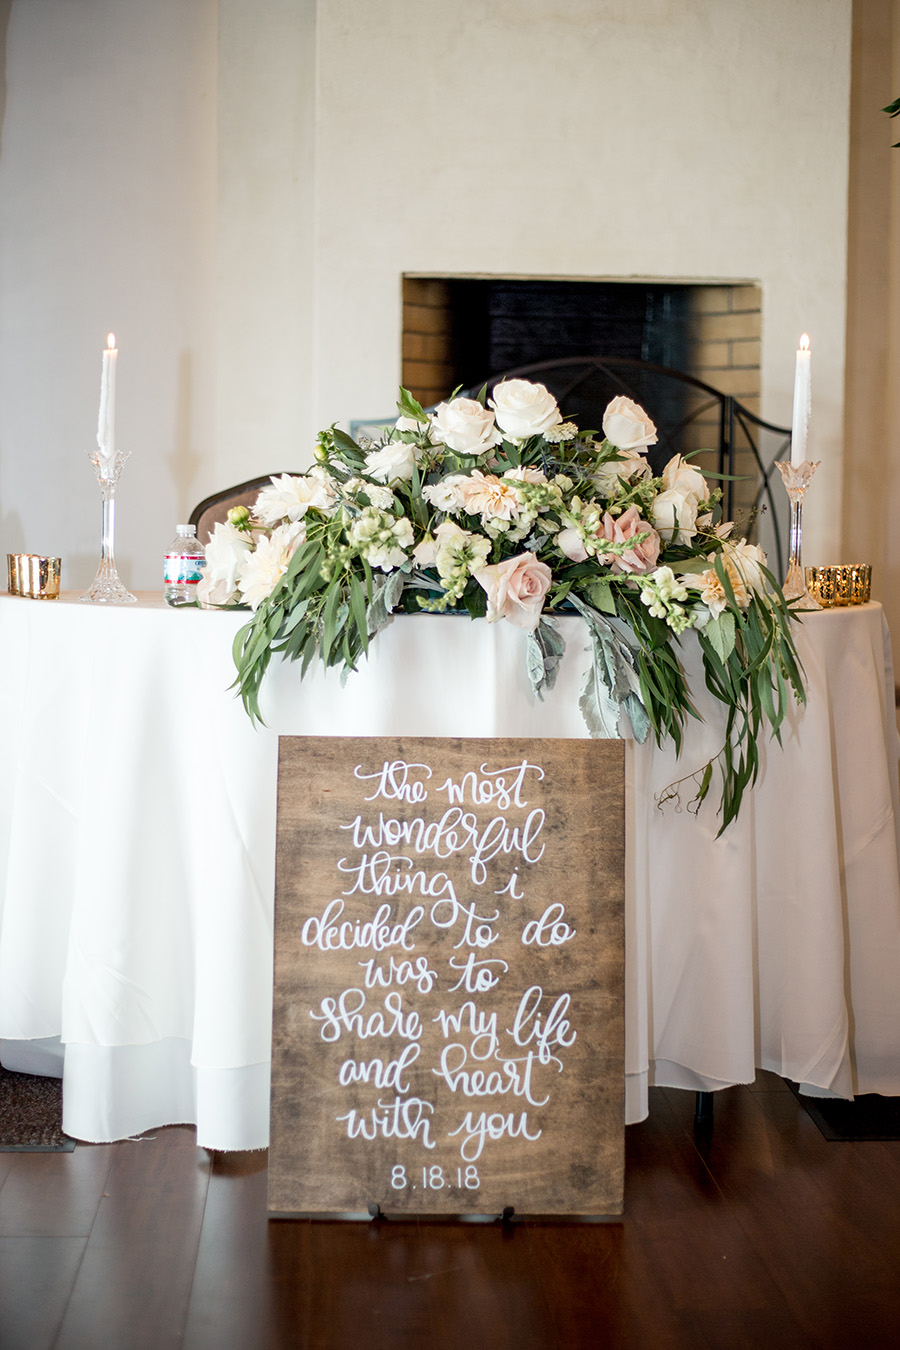 sweetheart table at the wedding reception